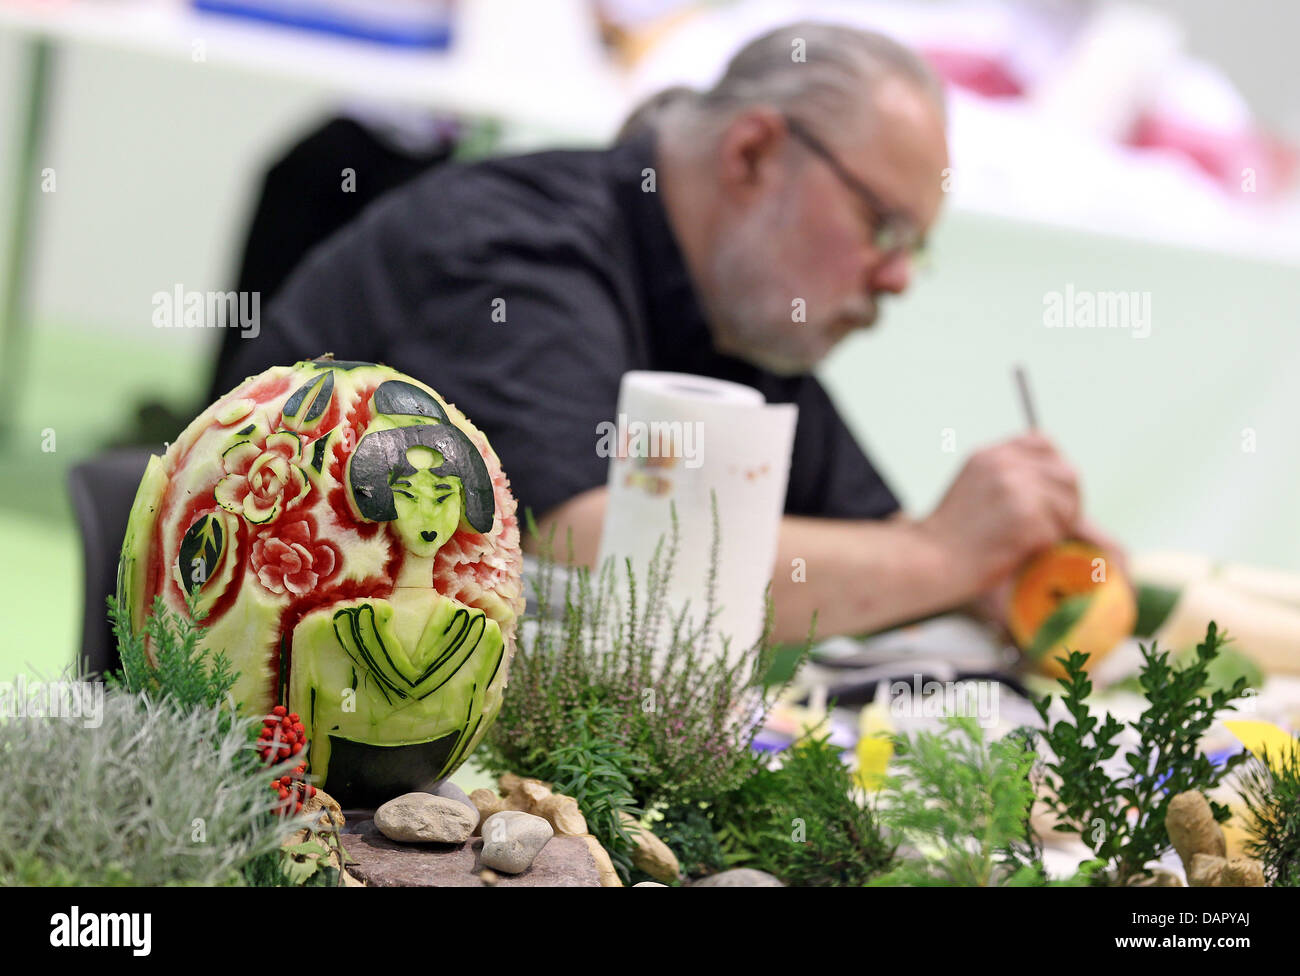 Vegetable carving for competition - Download